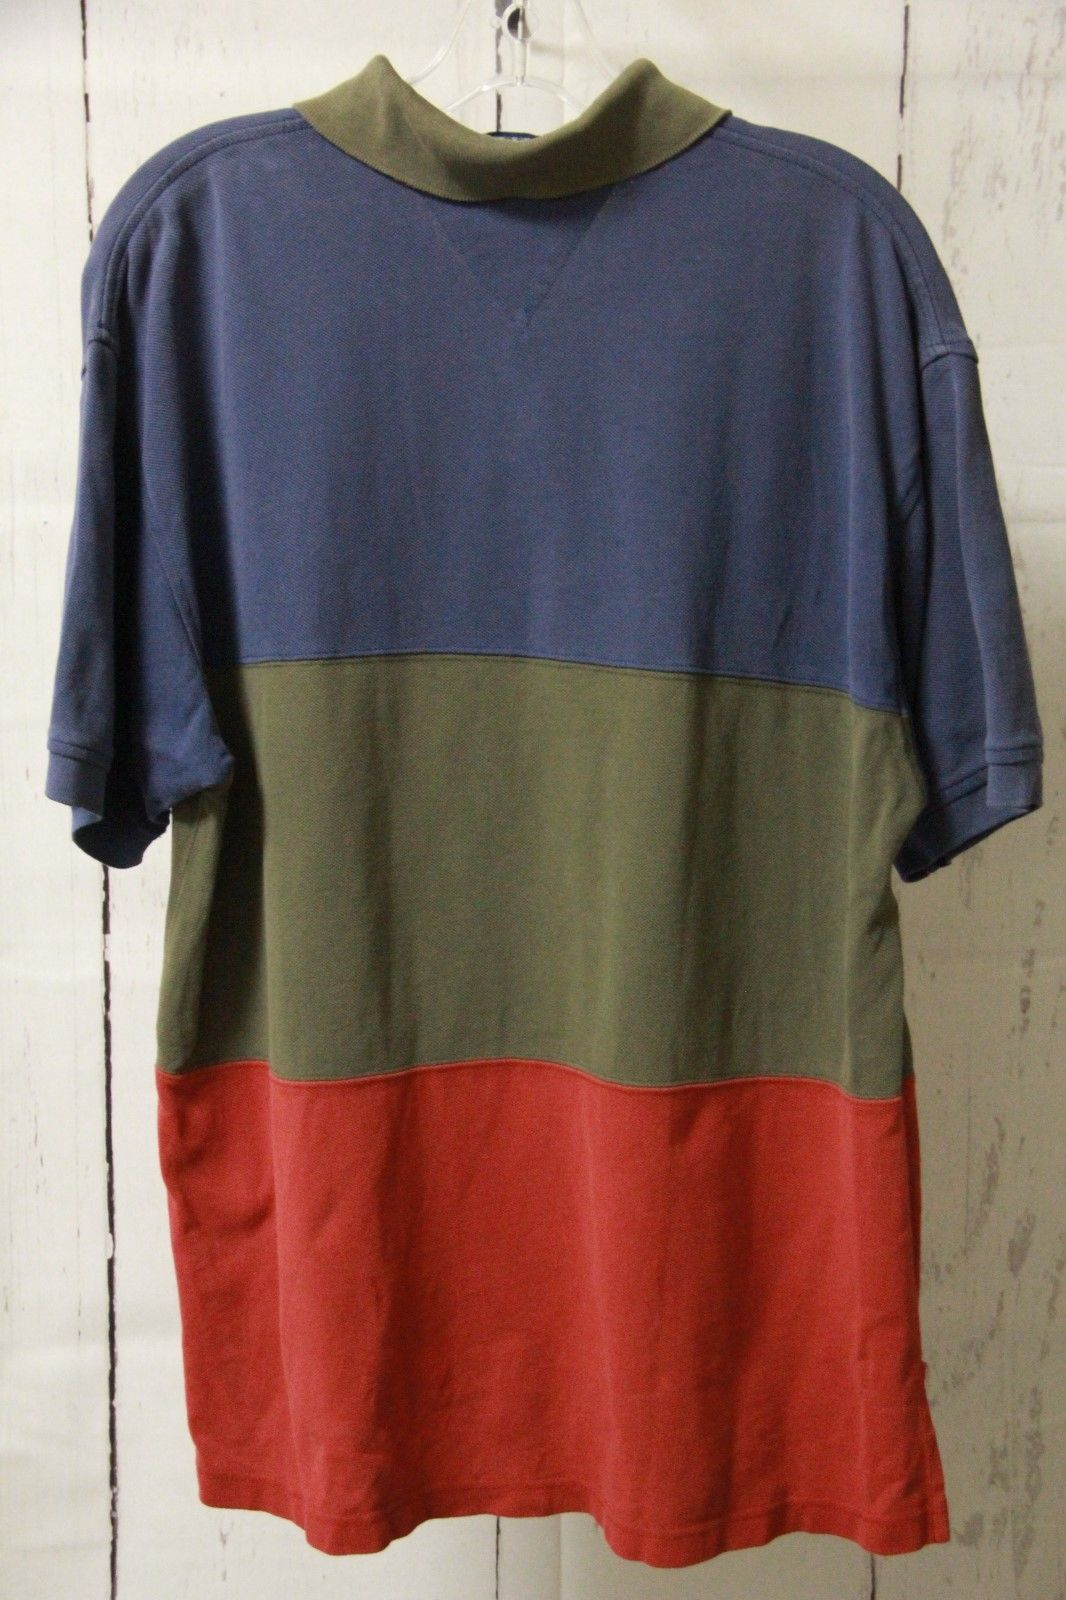 177006af Vintage 90s Tommy Hilfiger Color Block Polo Shirt Mens Size Medium  Multicolor | eBay